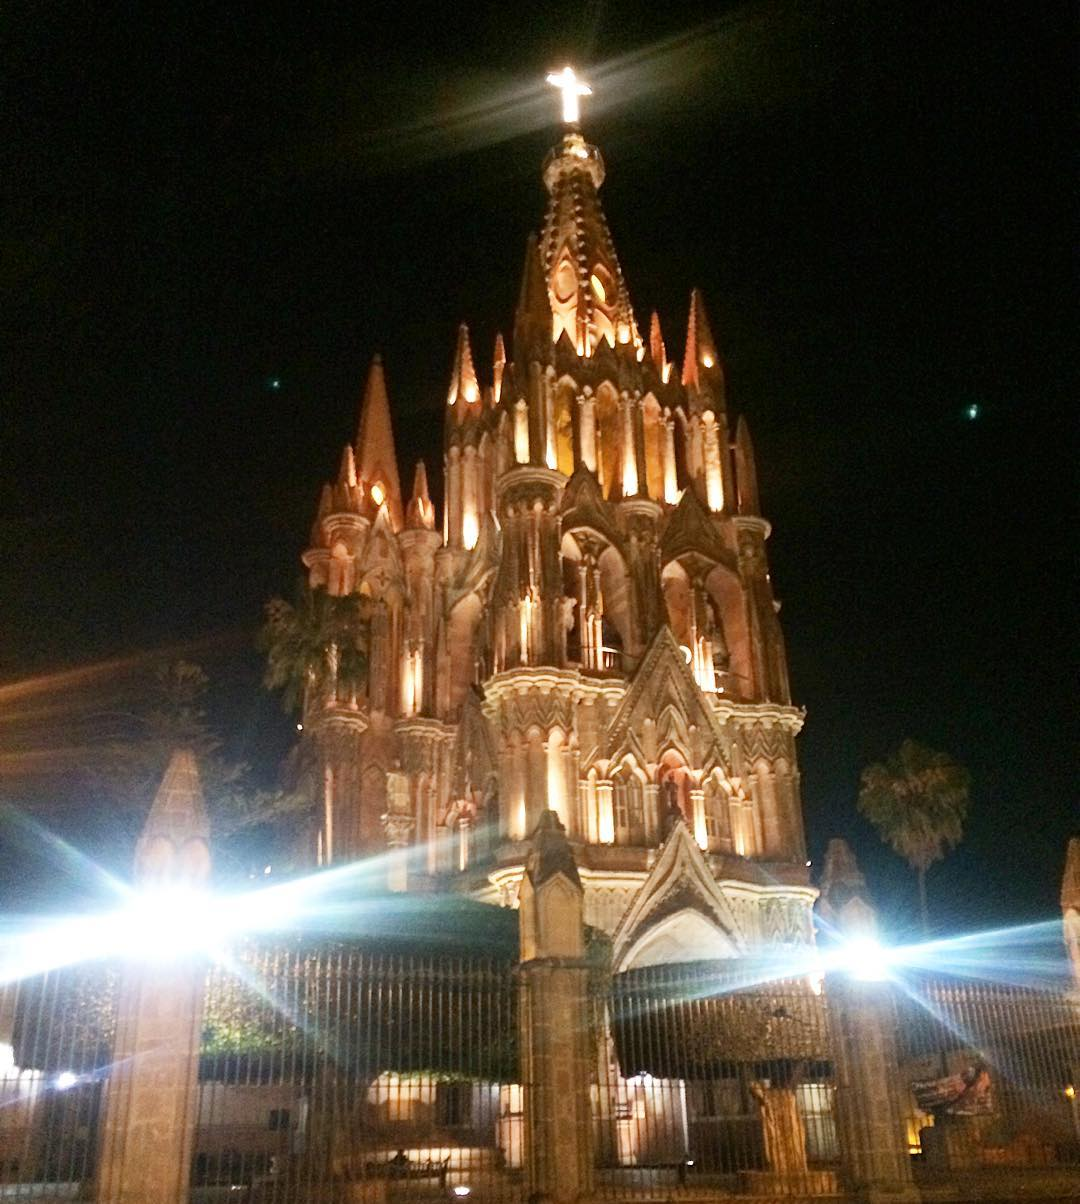 Goodnight from Mexico  Buenas noches desde sanmigueldeallende laMariposaMexico laMPtravelshellip